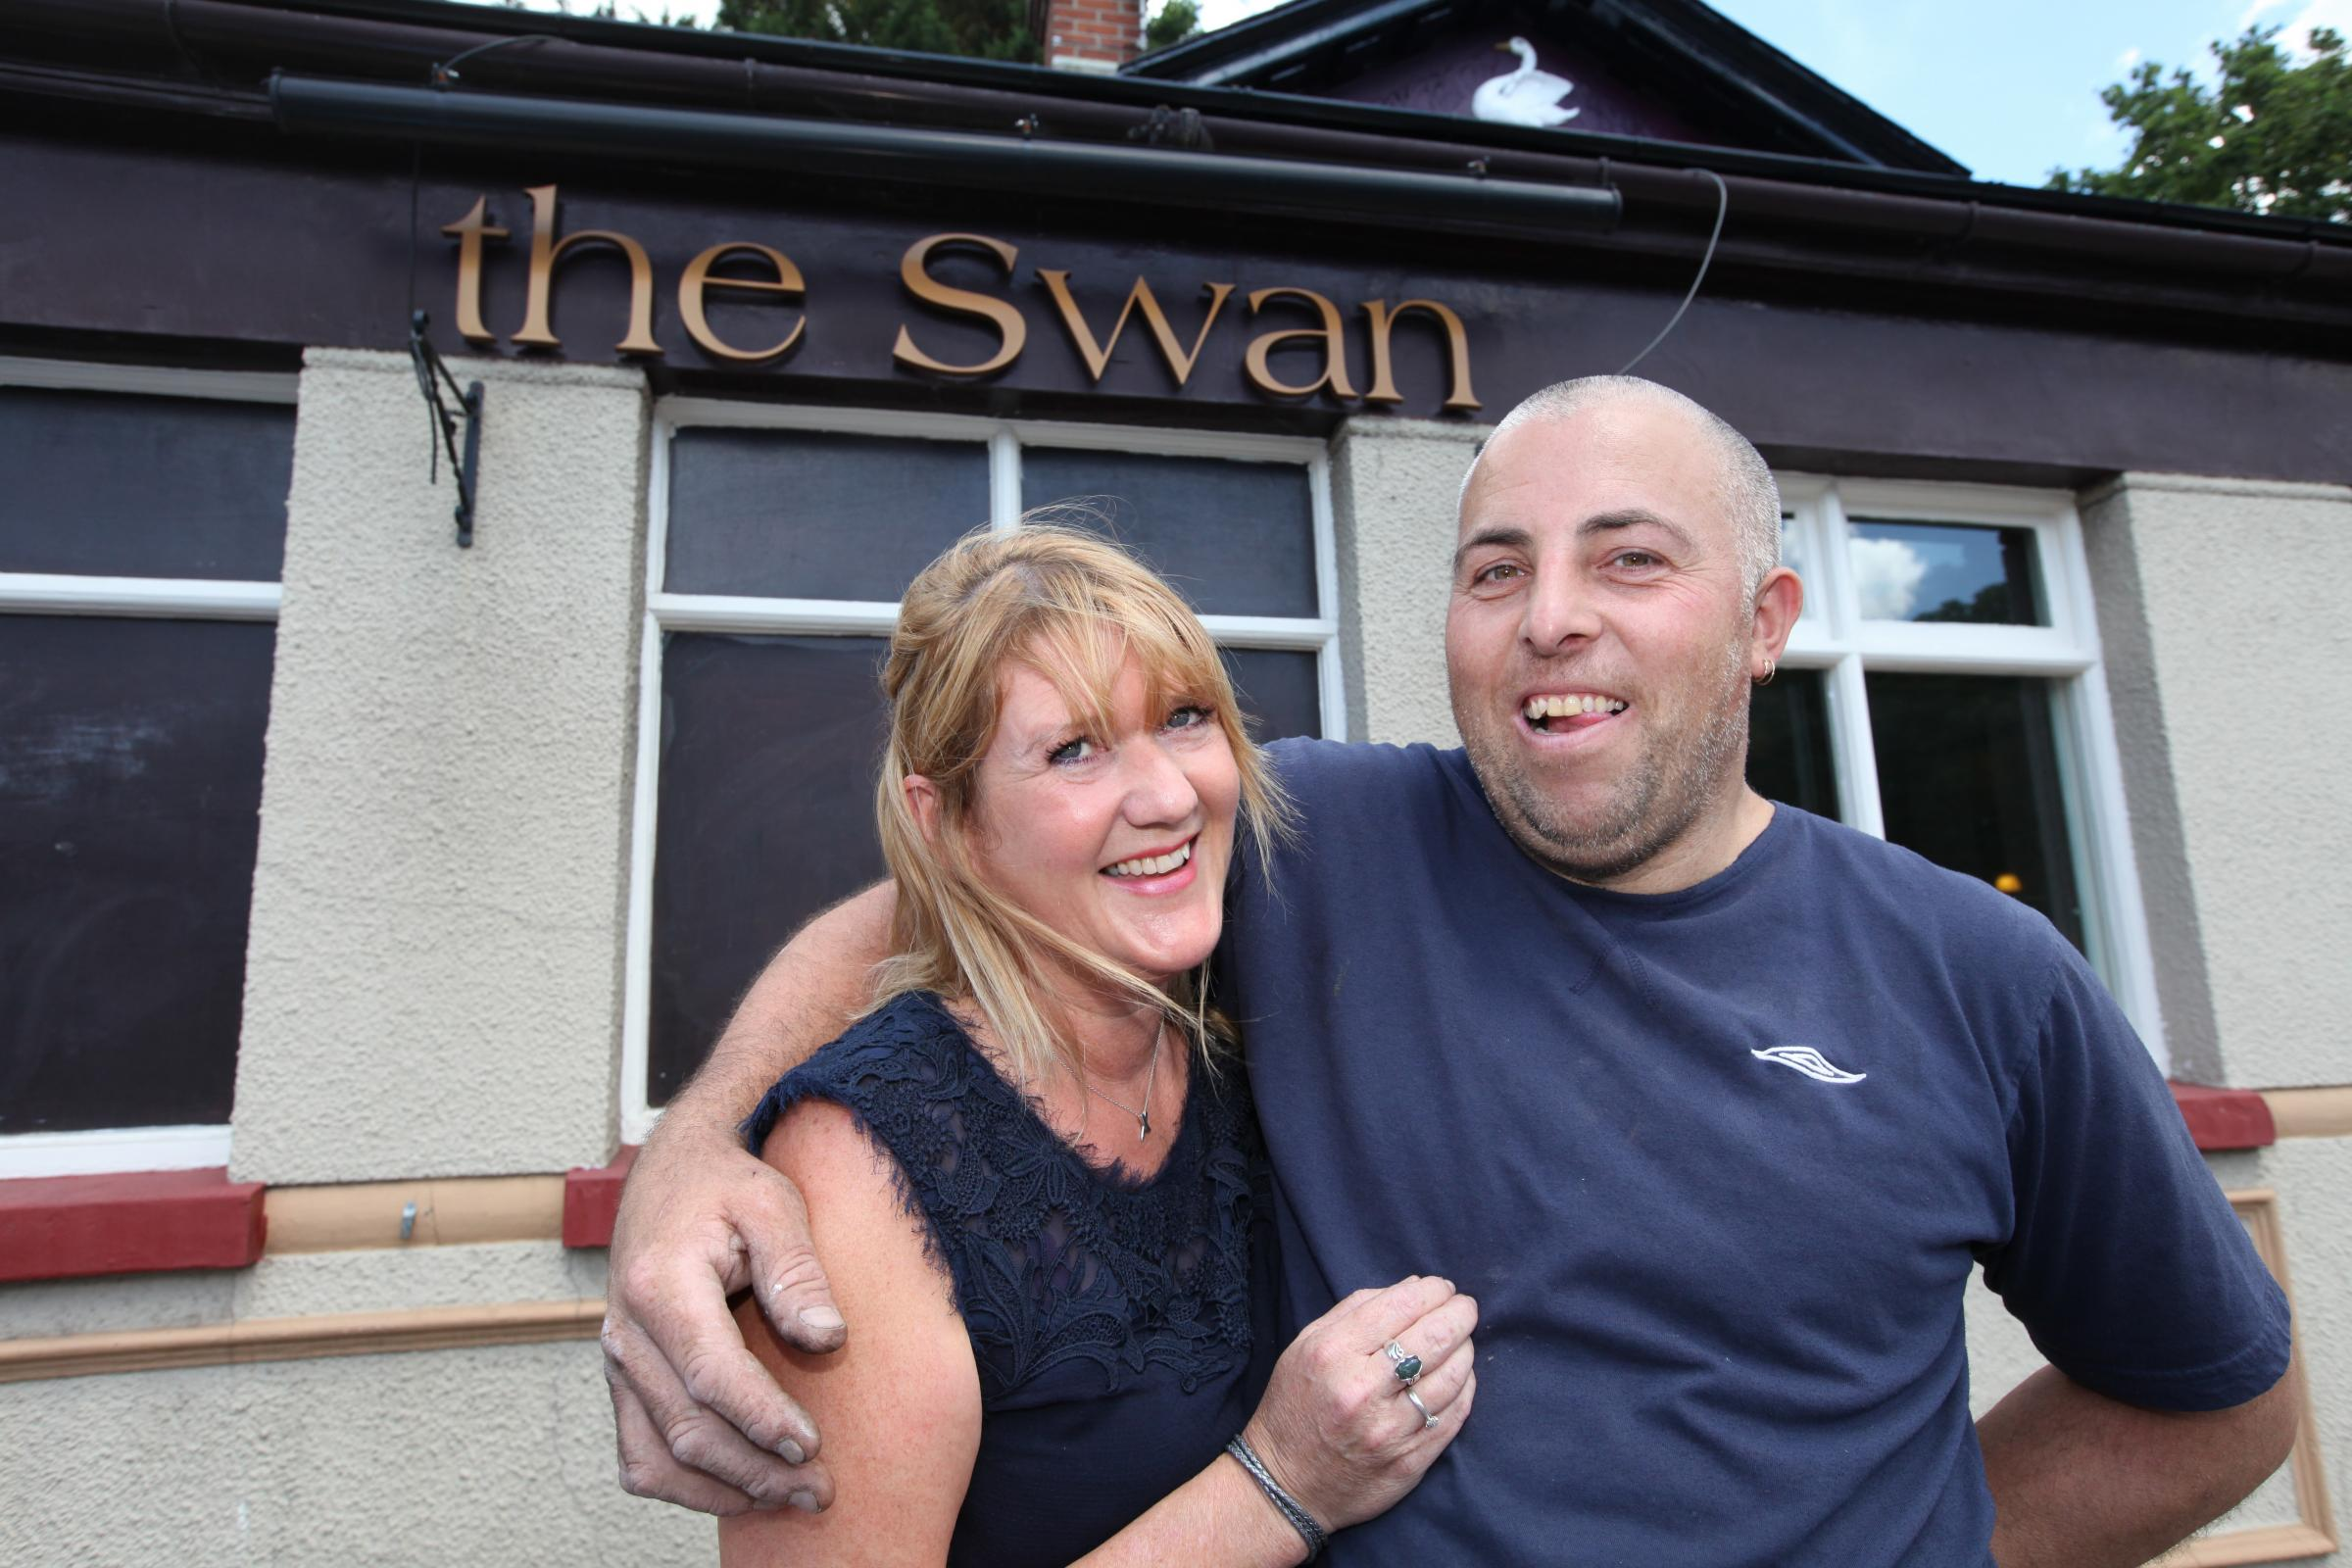 Jacqui Gordon, new landlady of The Swan, with partner Richard Fearles